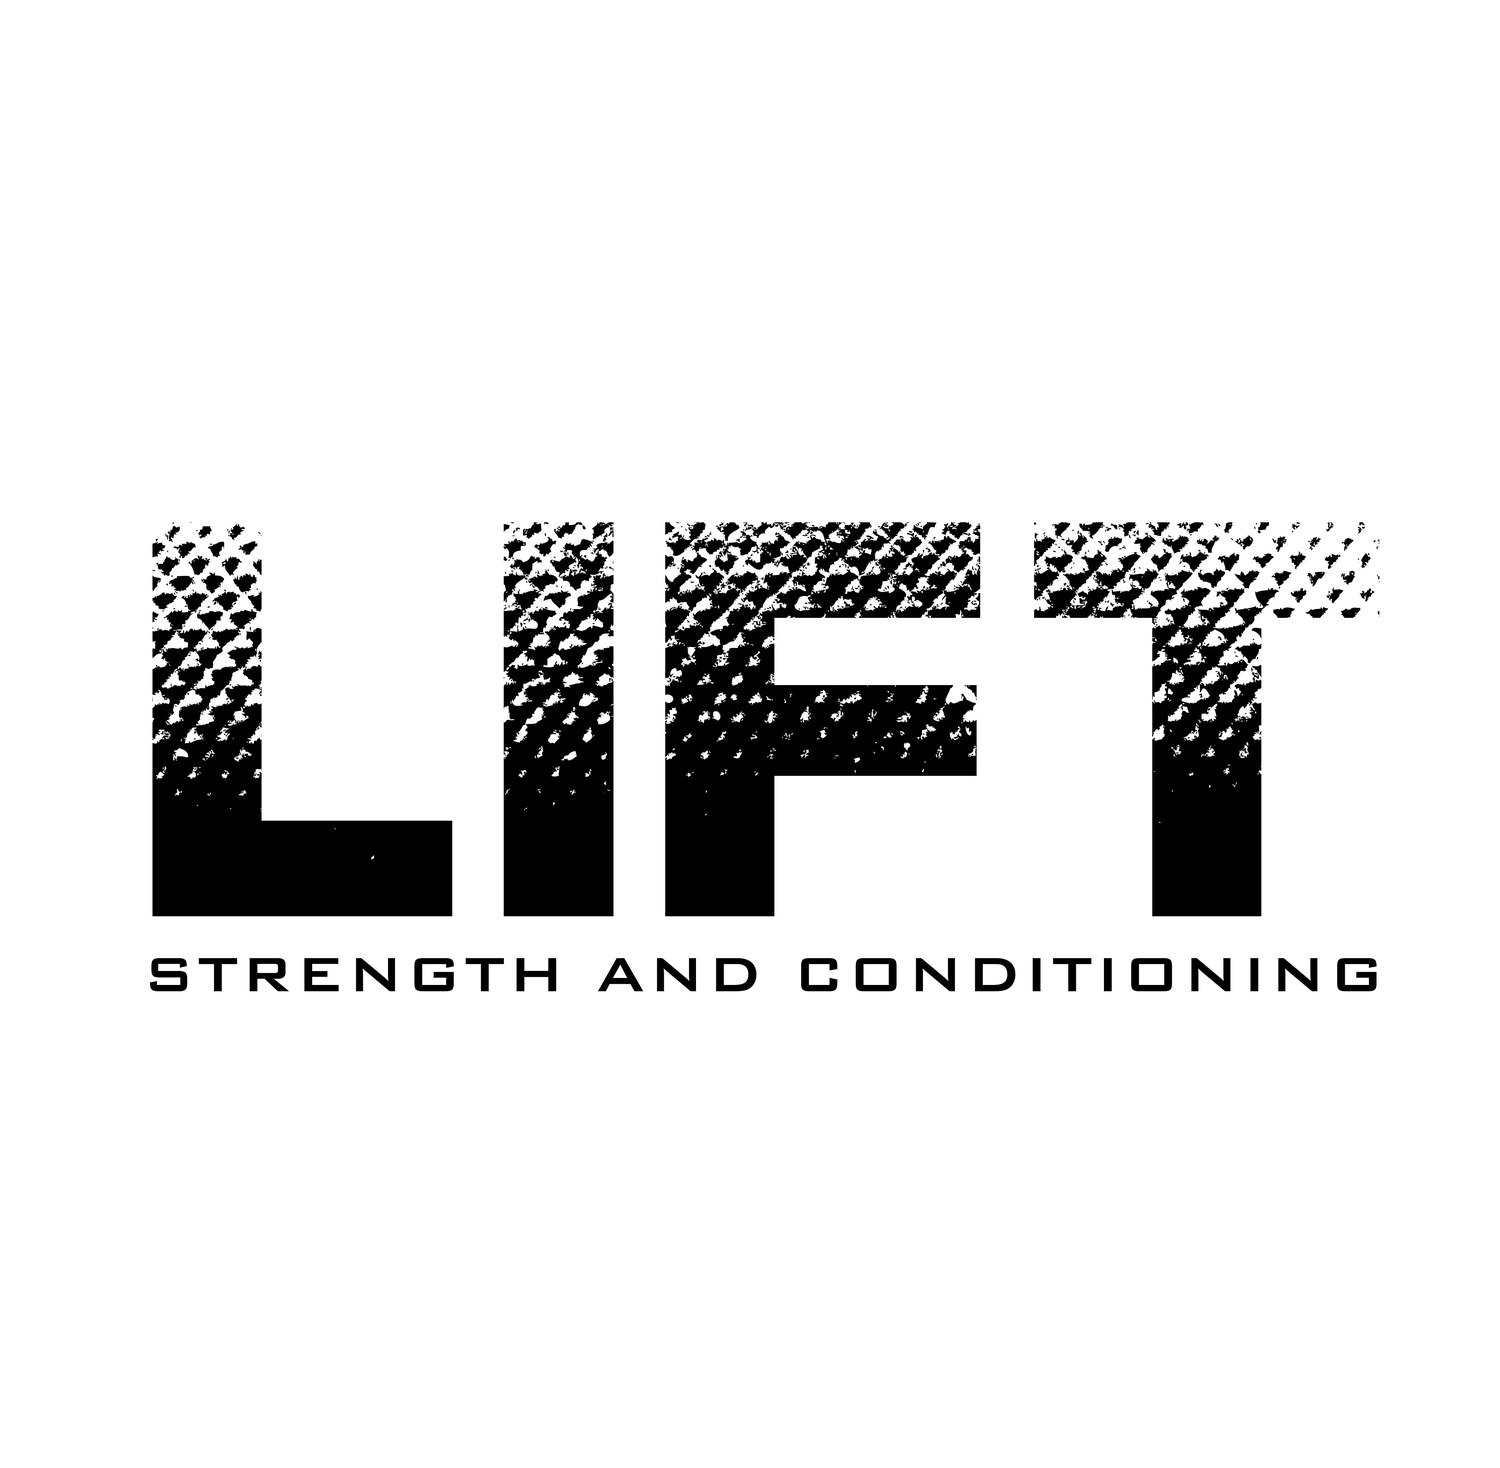 Lift Strength and Conditioning